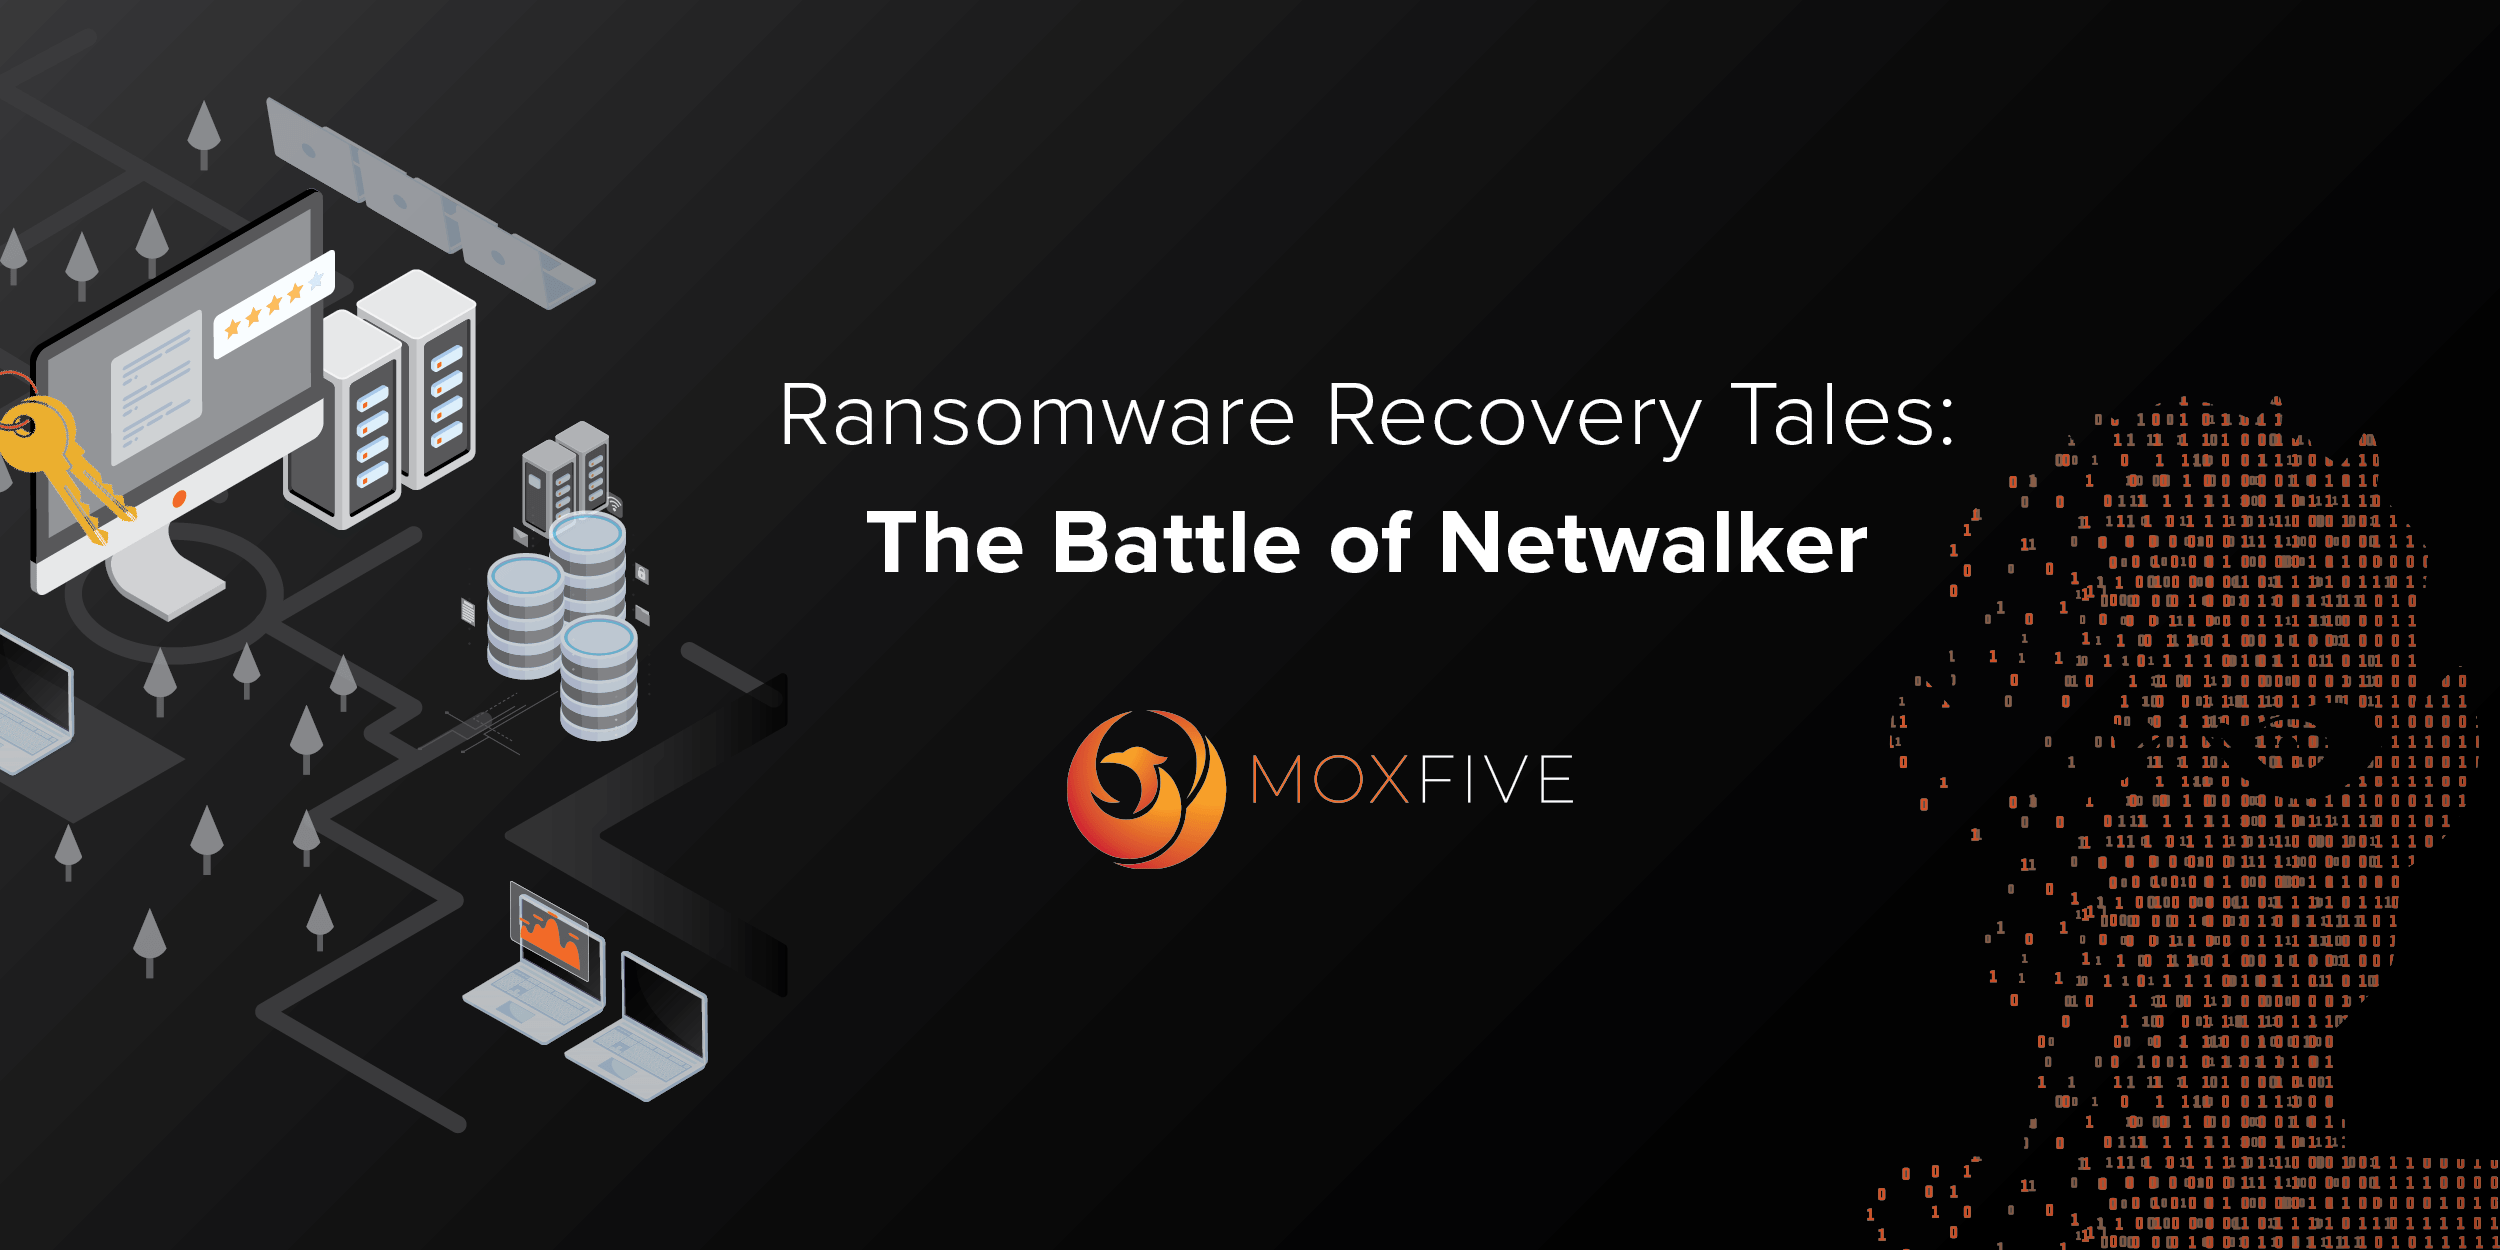 Ransomware Recovery Tales: The Battle of Netwalker